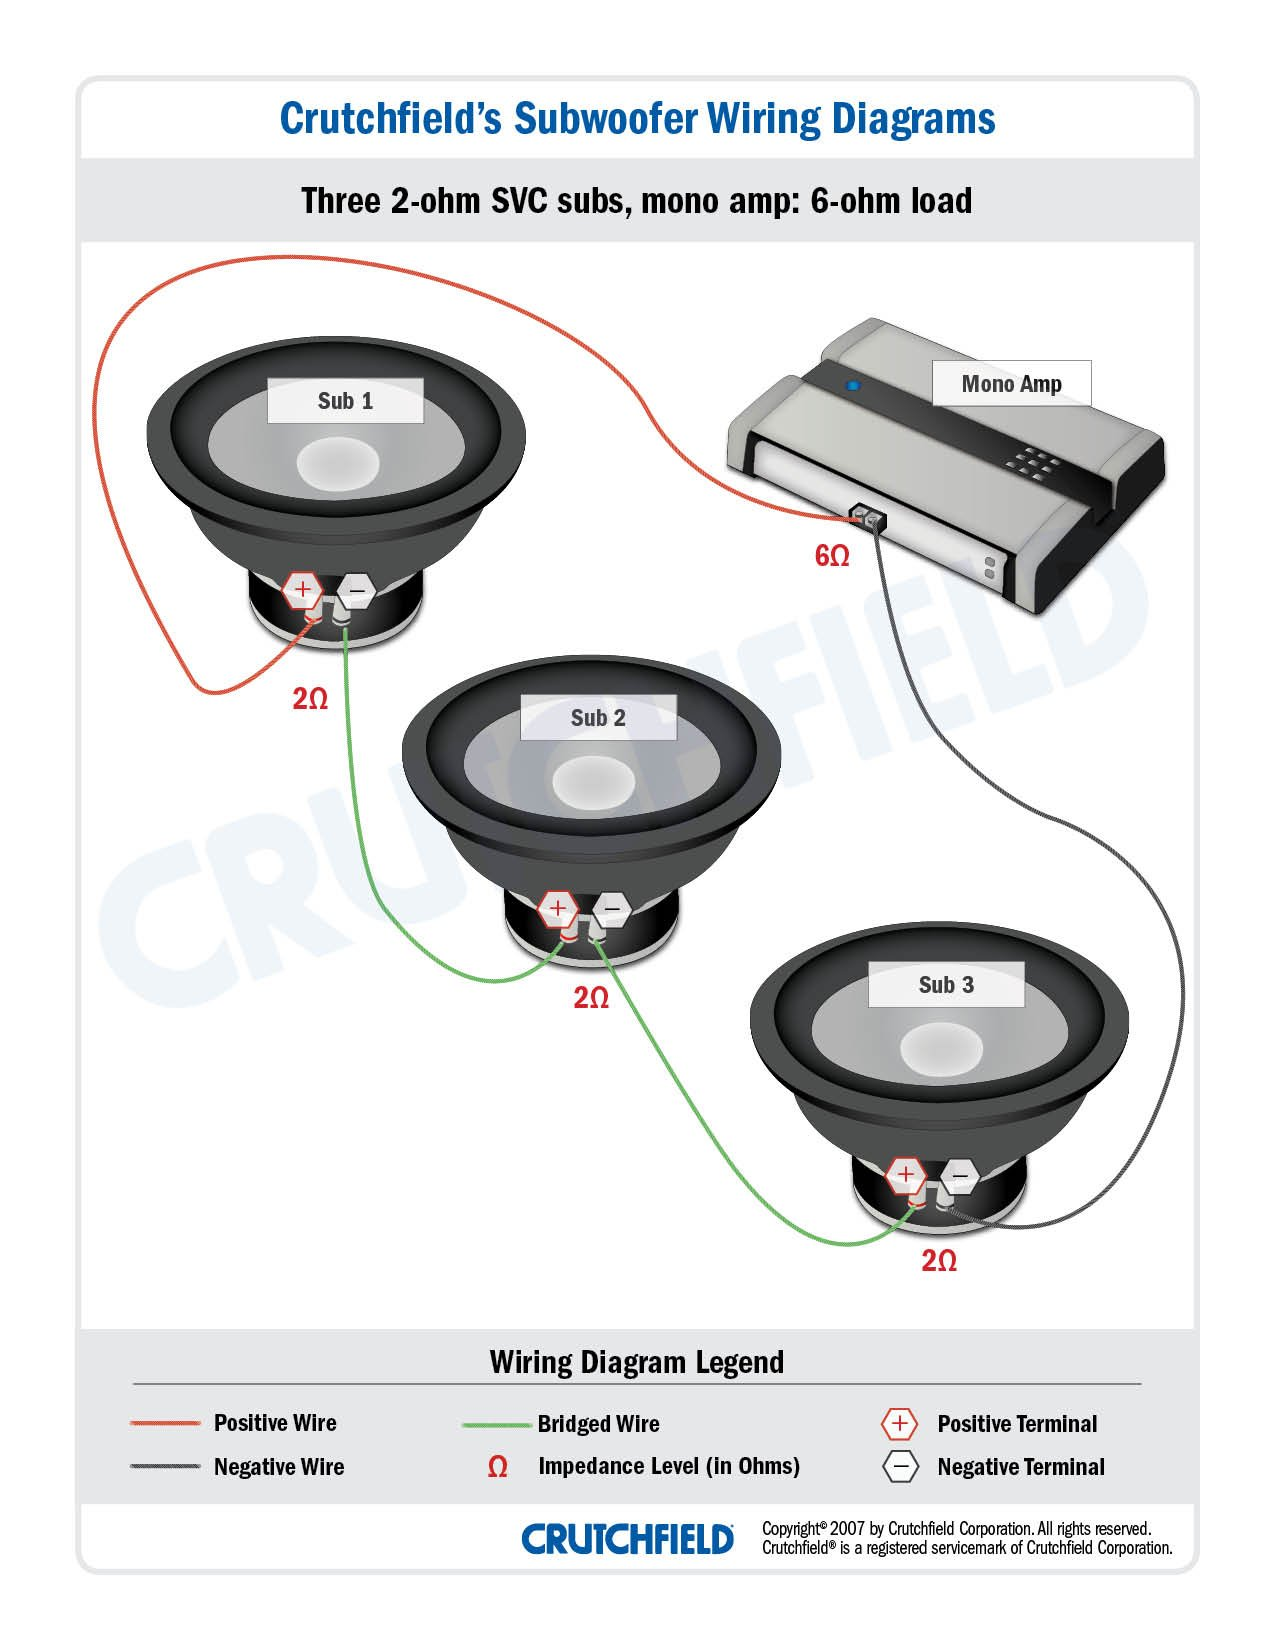 Subwoofer Wiring Diagrams How To Wire Your Subs Clarion Amp Diagram In Case On The Captions Change 2s 4s And 6 A 12